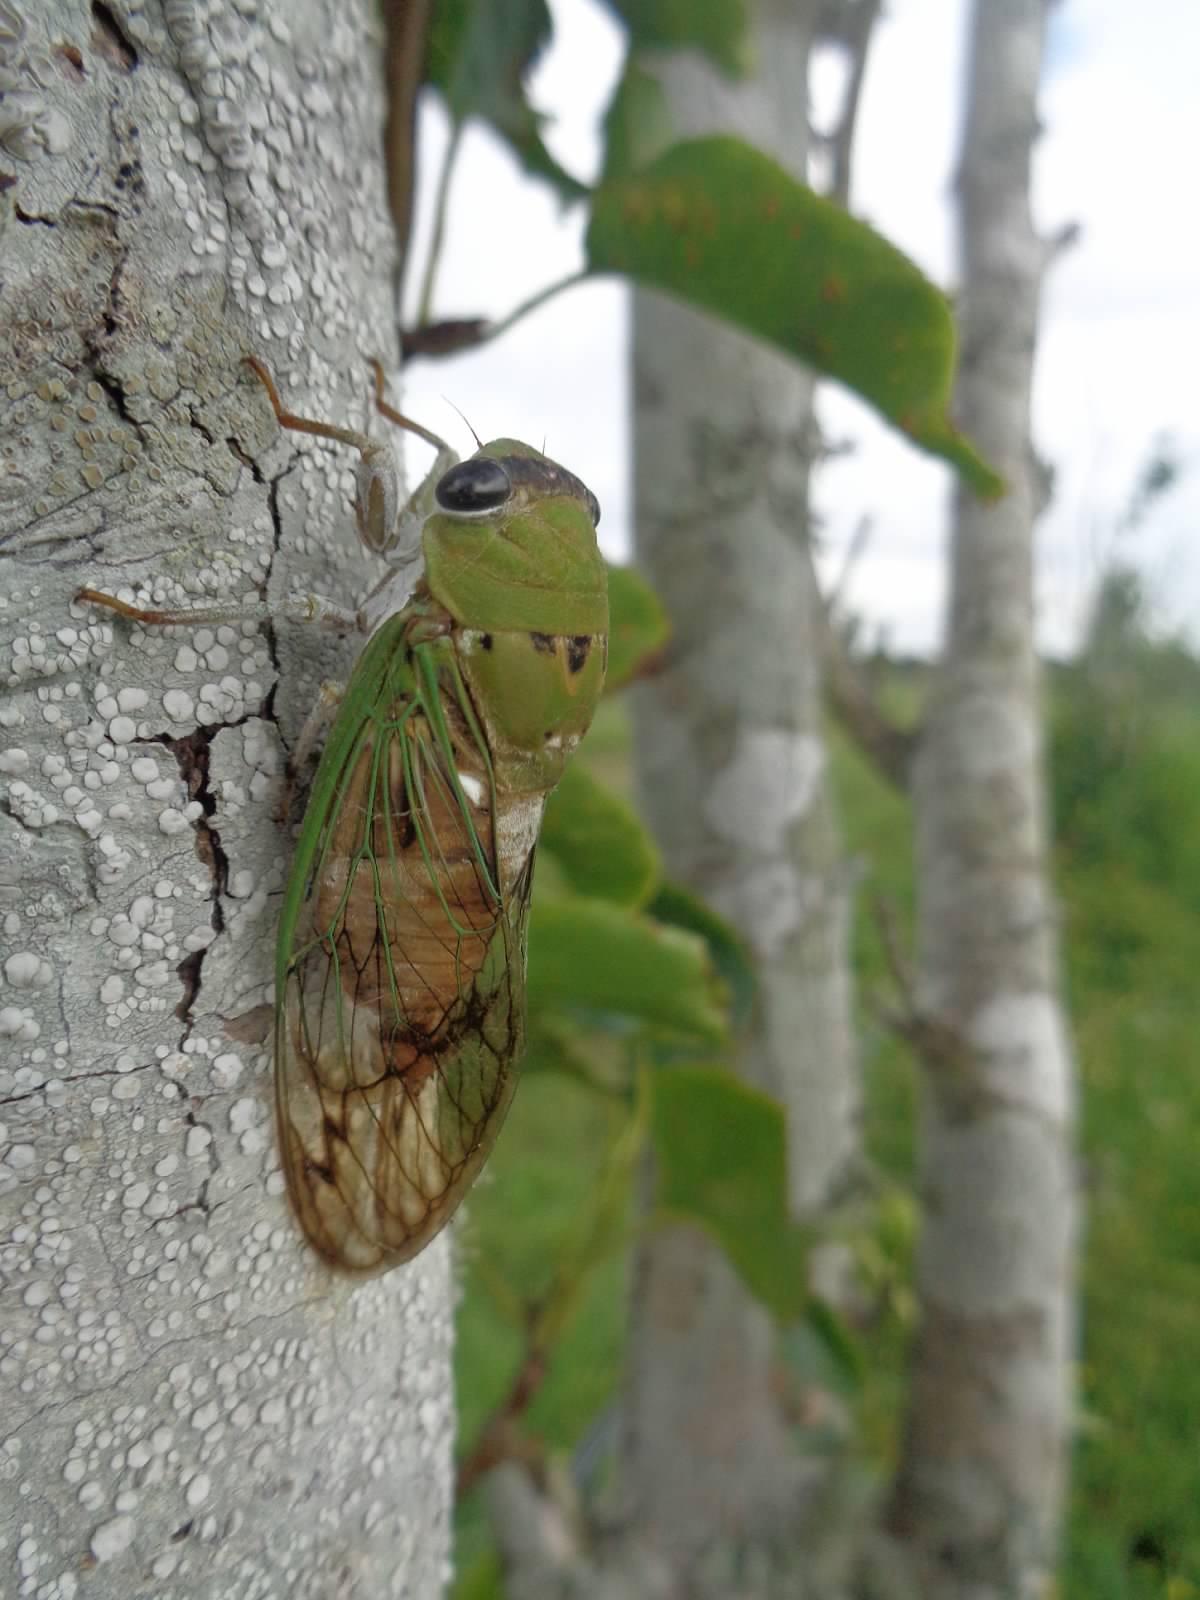 A cicada in the orchard. (c) Reese 2014